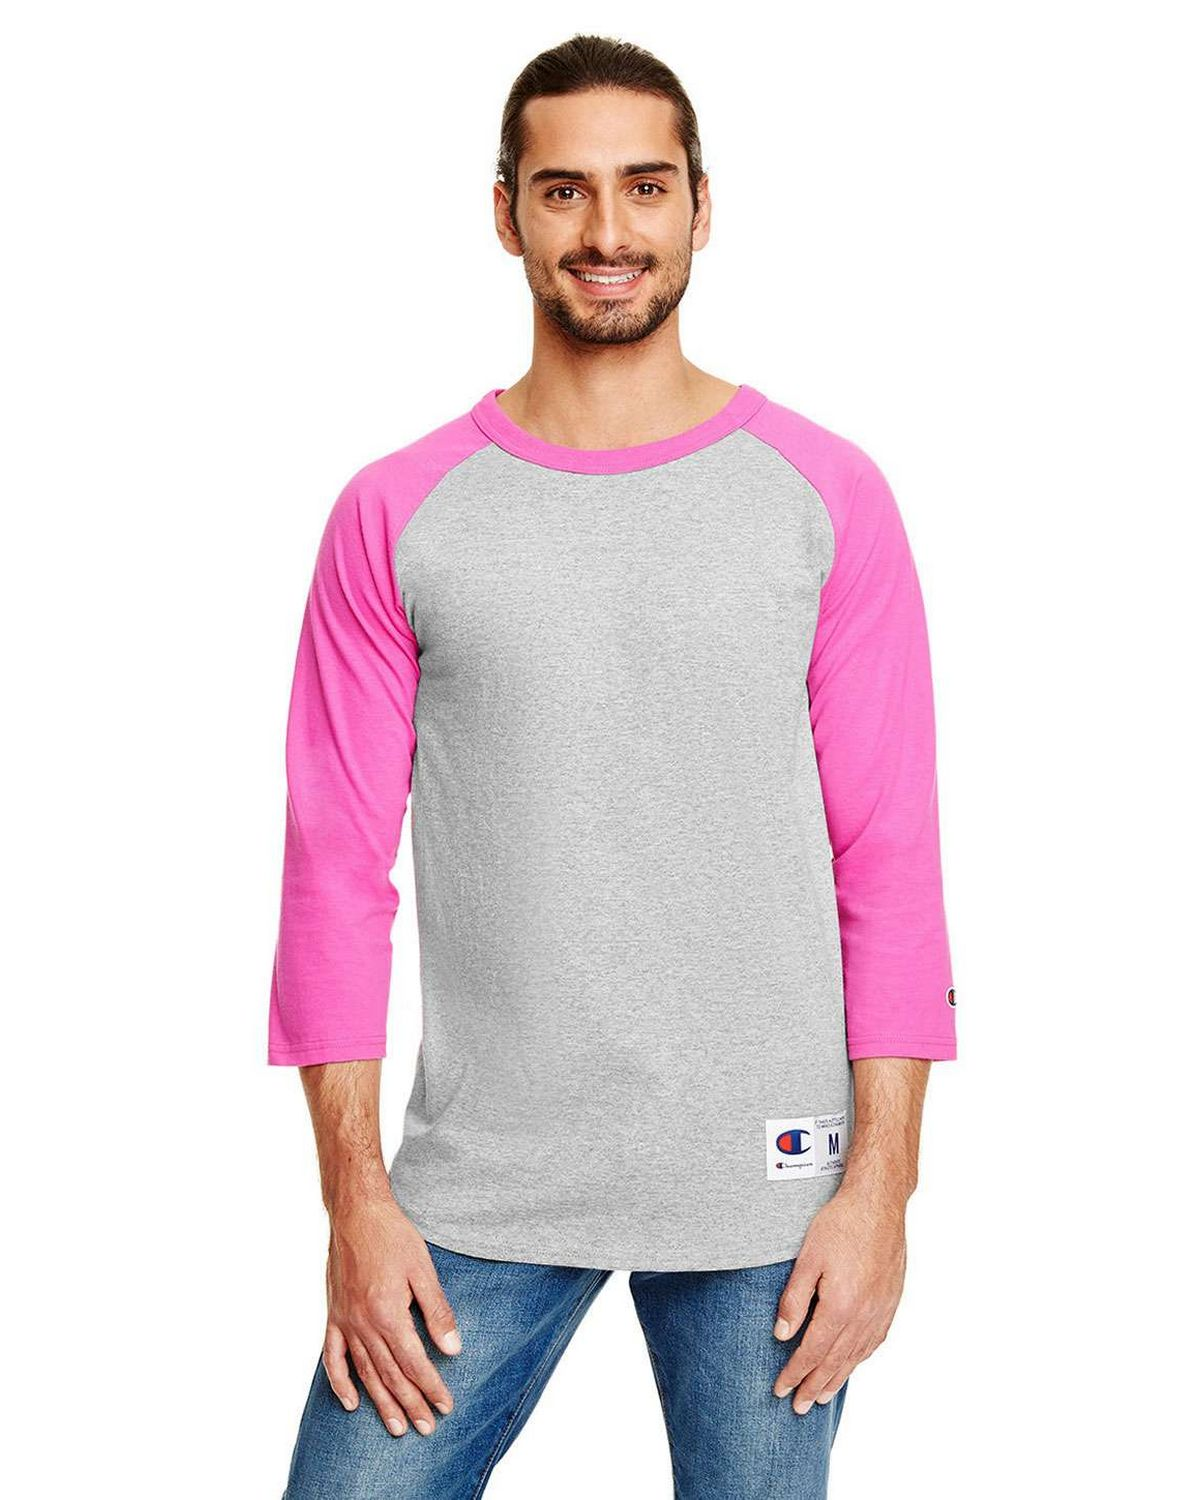 a8f98c06321d2 Buy Champion T1397 100% Cotton Tagless Raglan Baseball T Shirt